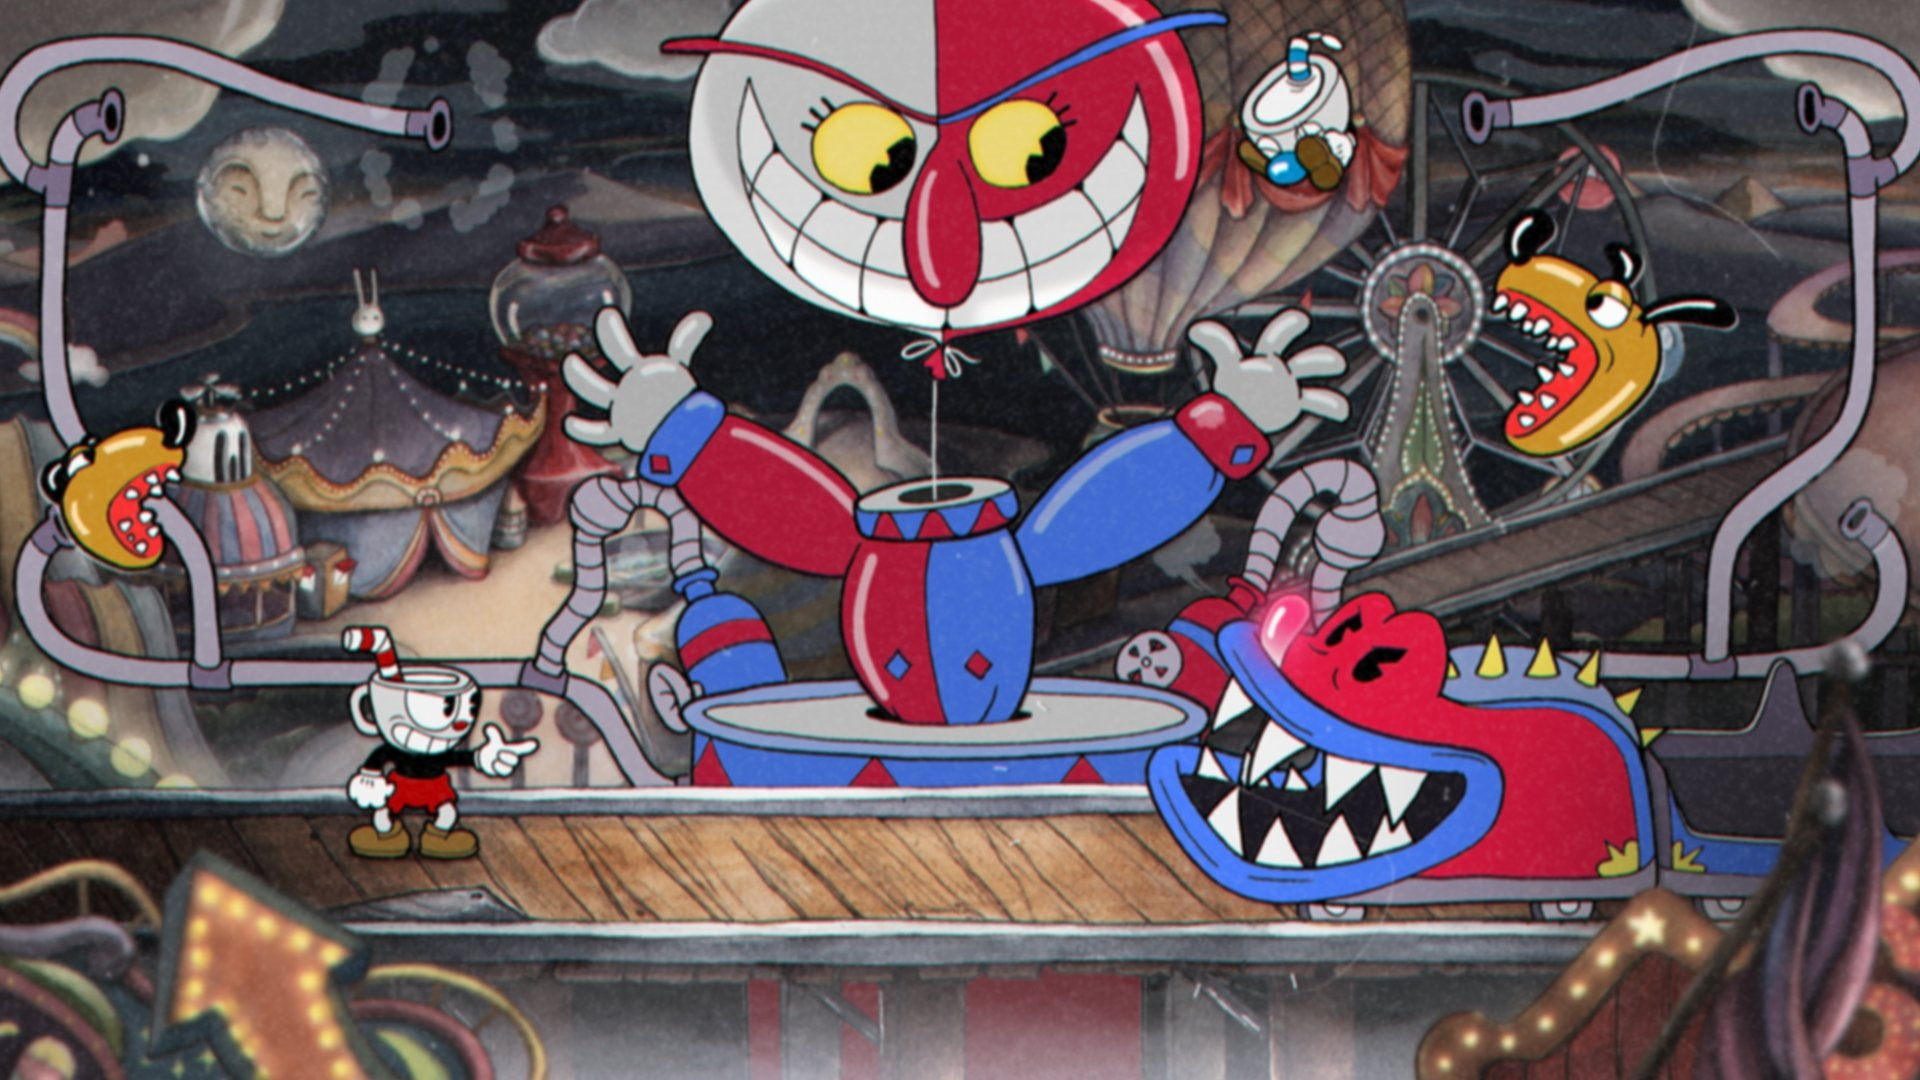 Cuphead was developed and published by Studio MDHR. (Credit: Studio MDHR)